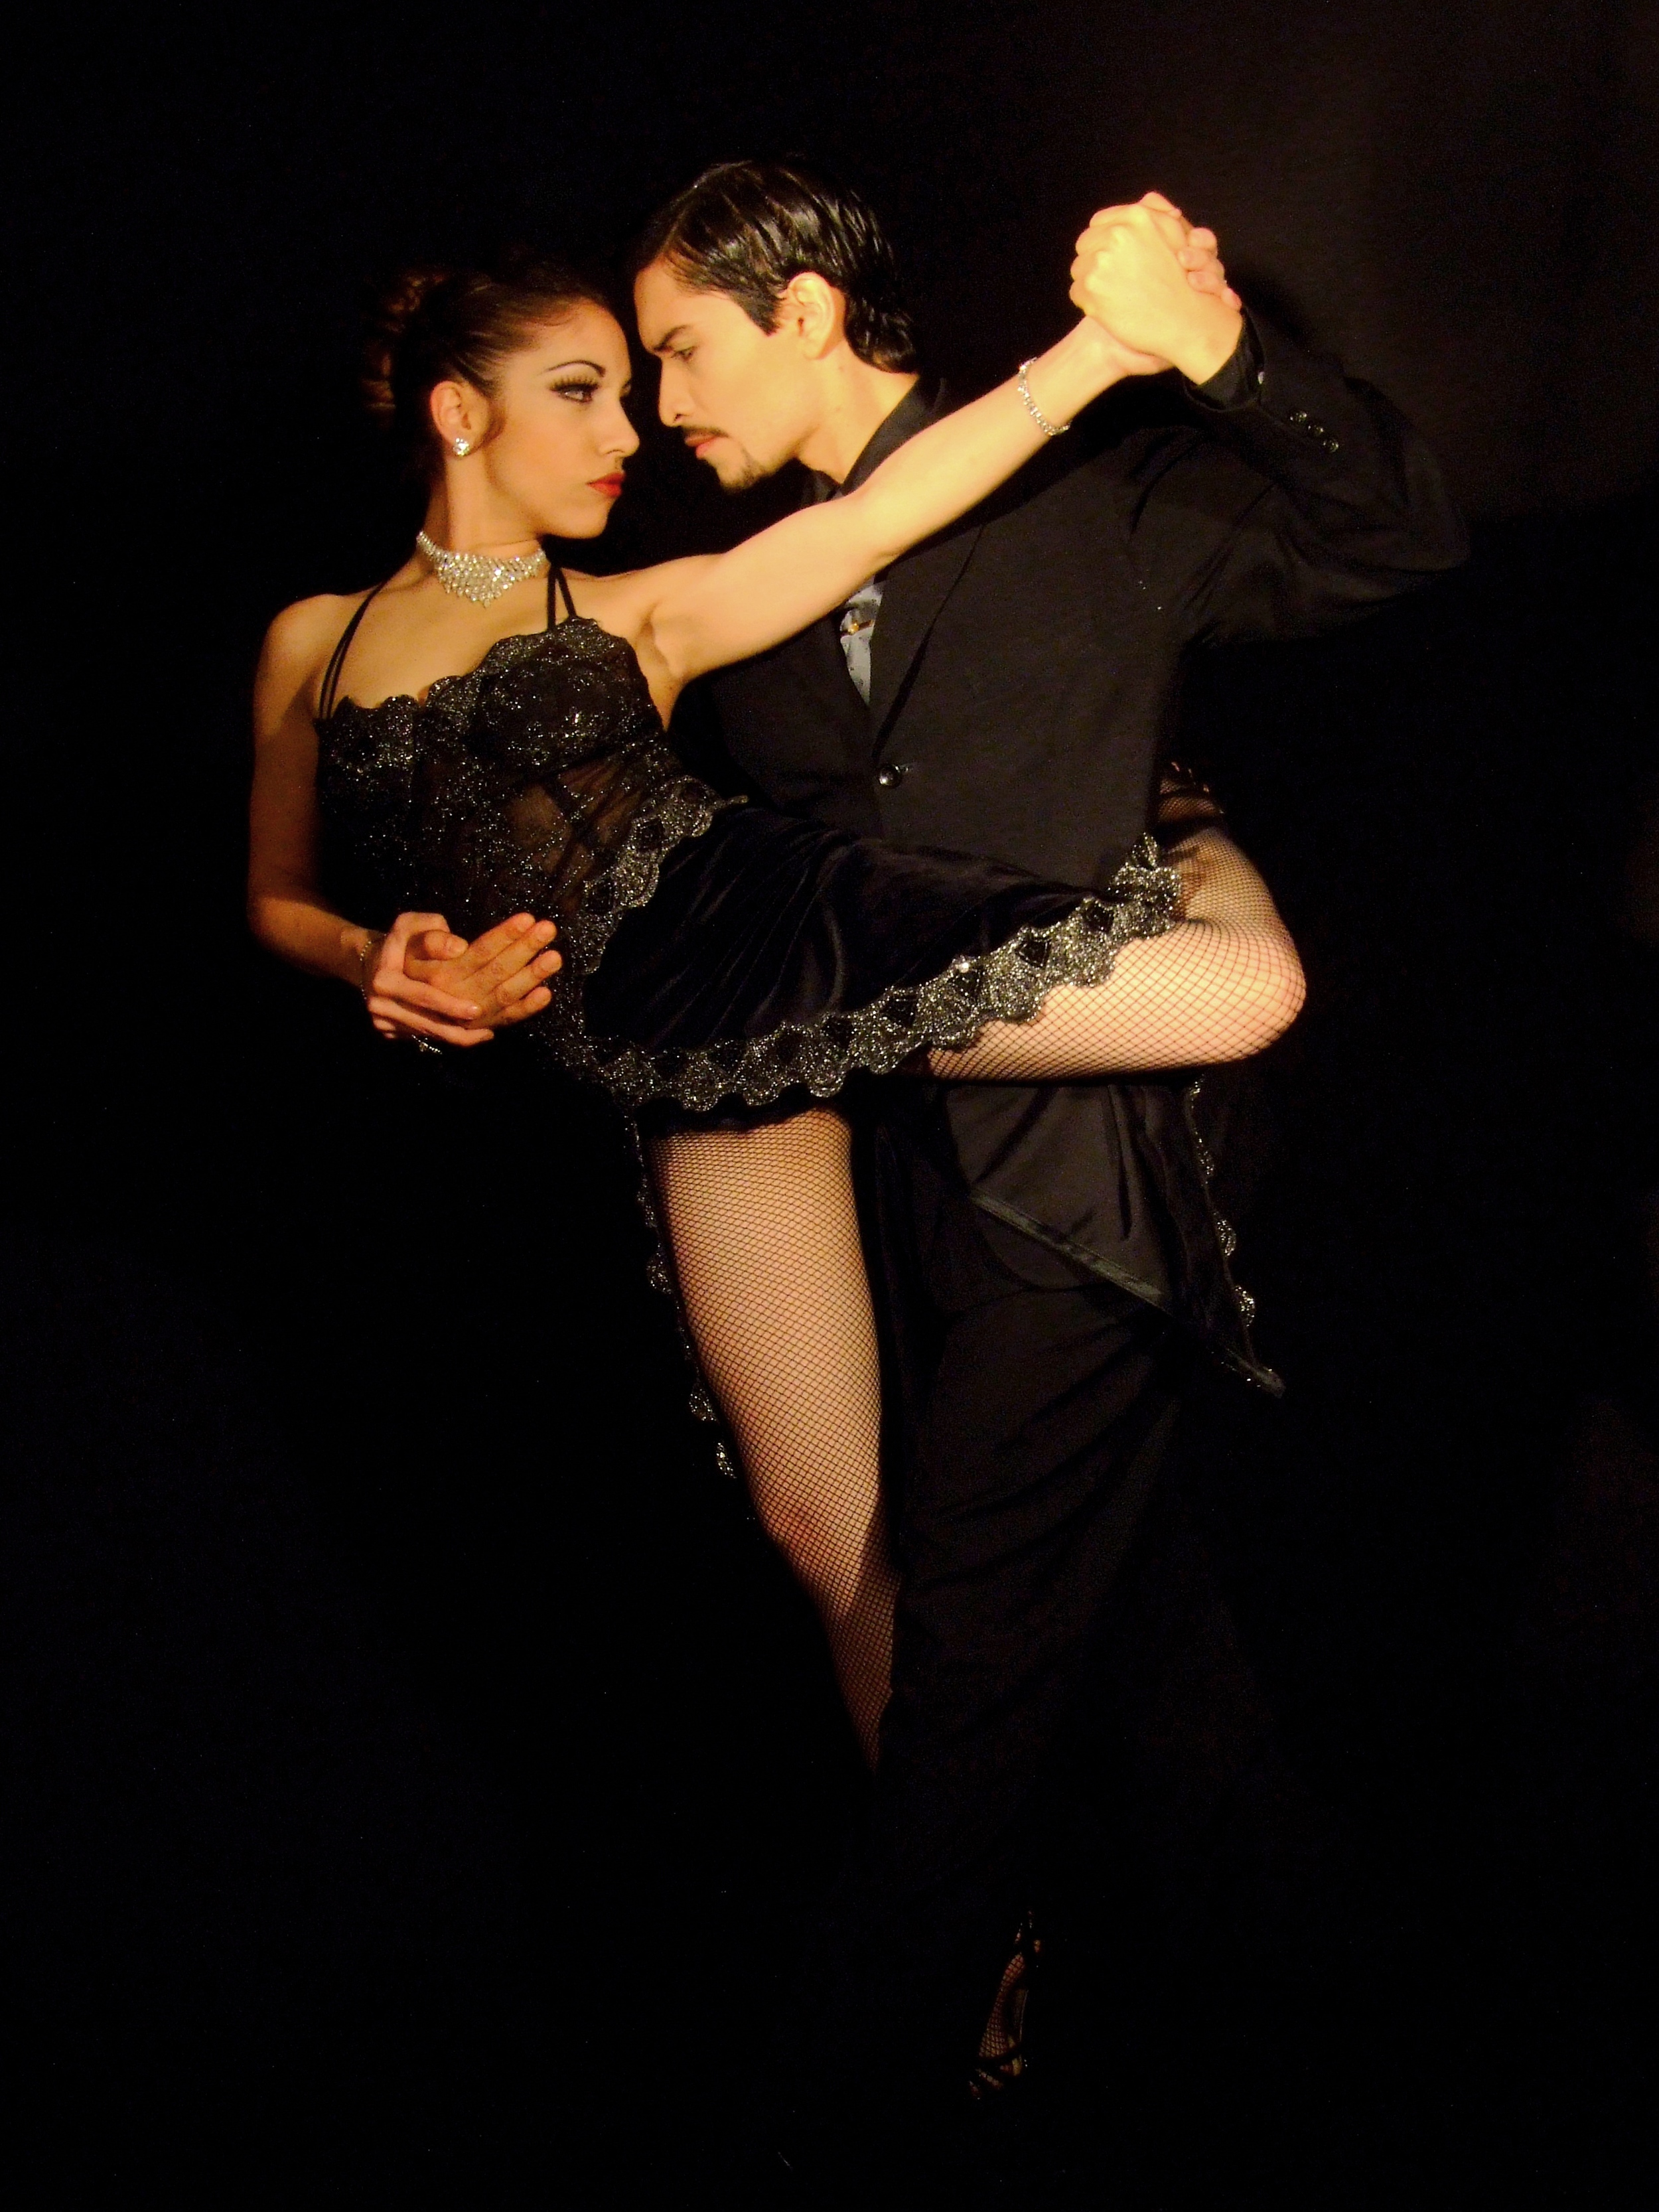 By carlos luque (originally posted to Arte & Fotografía as TANGO) [CC-BY-2.5 (http://creativecommons.org/licenses/by/2.5)], via Wikimedia Commons